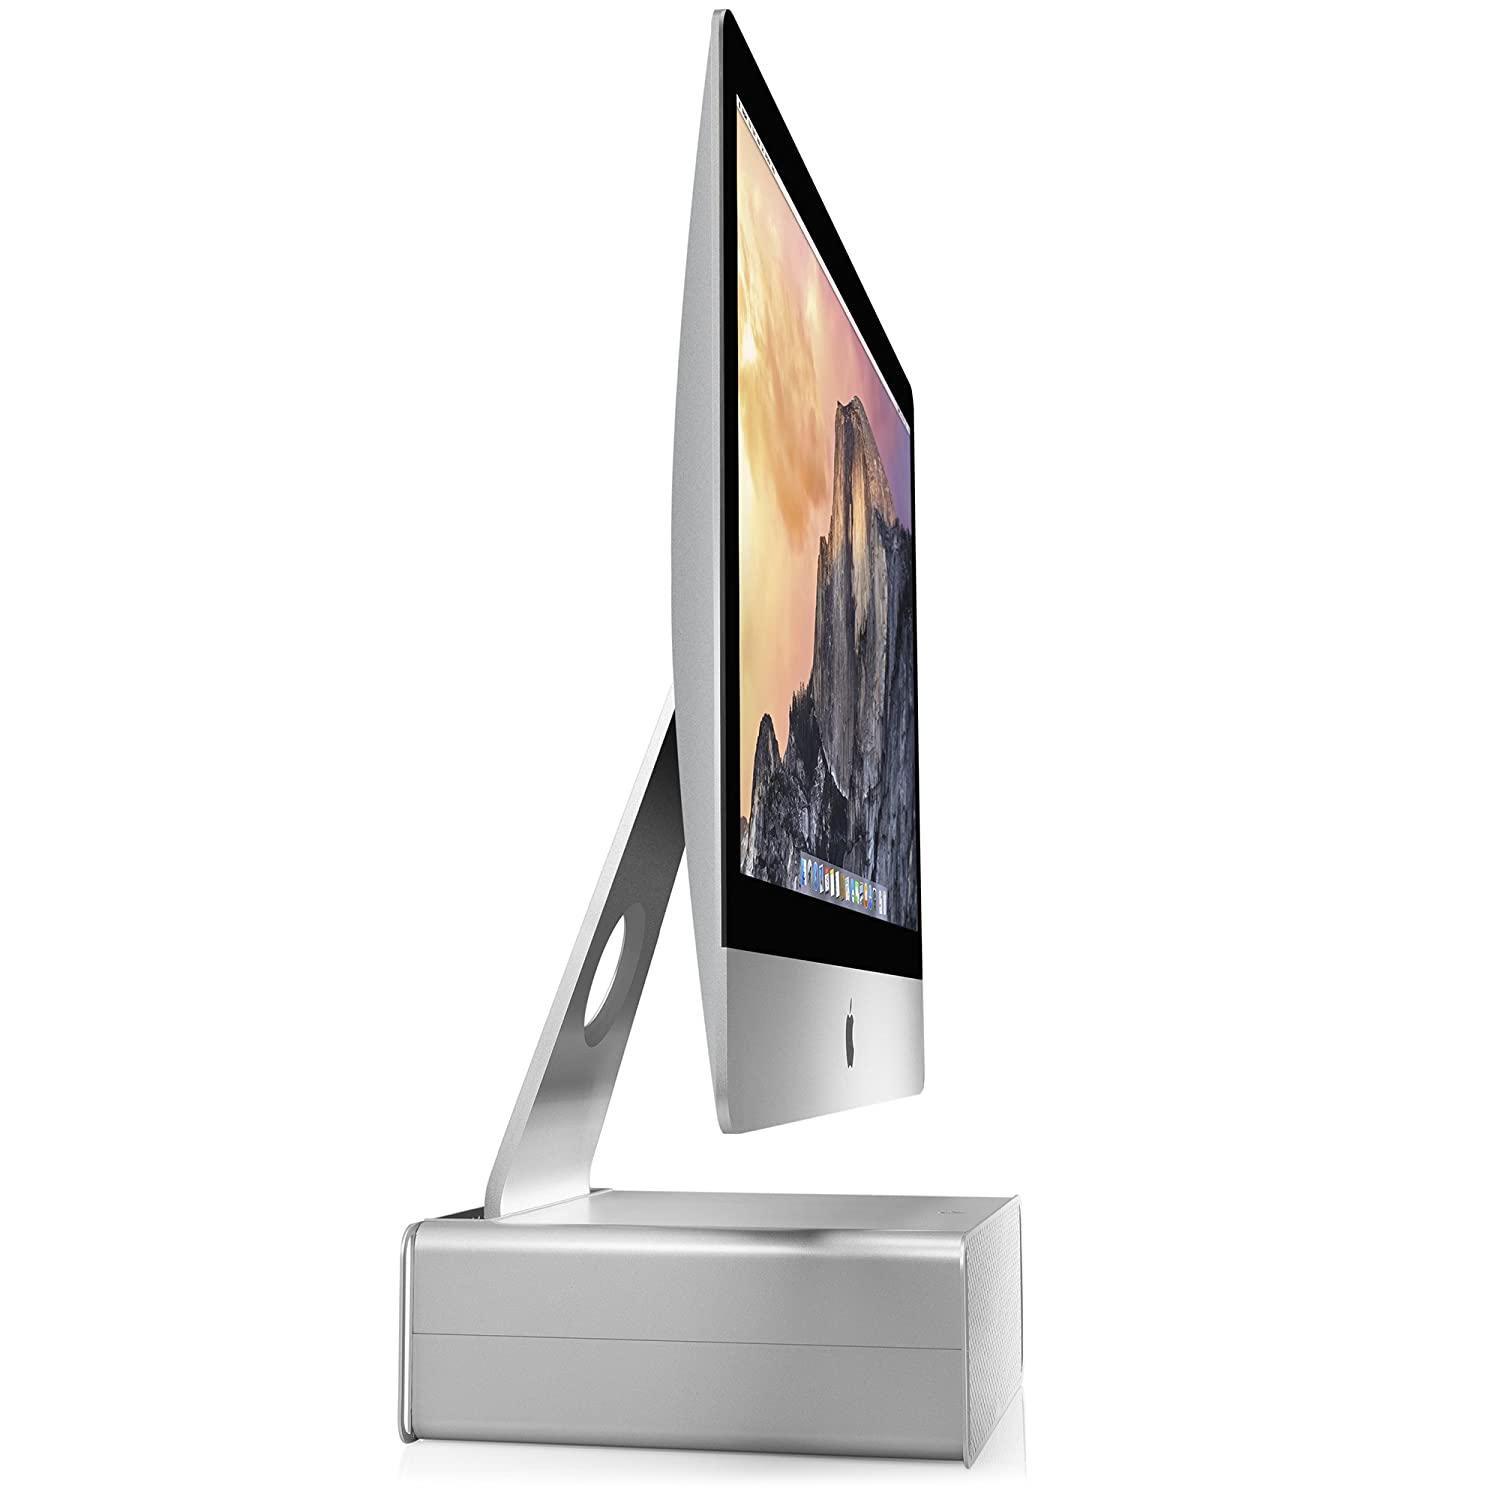 Image Gallery Imac 27 Dimensions With Stand